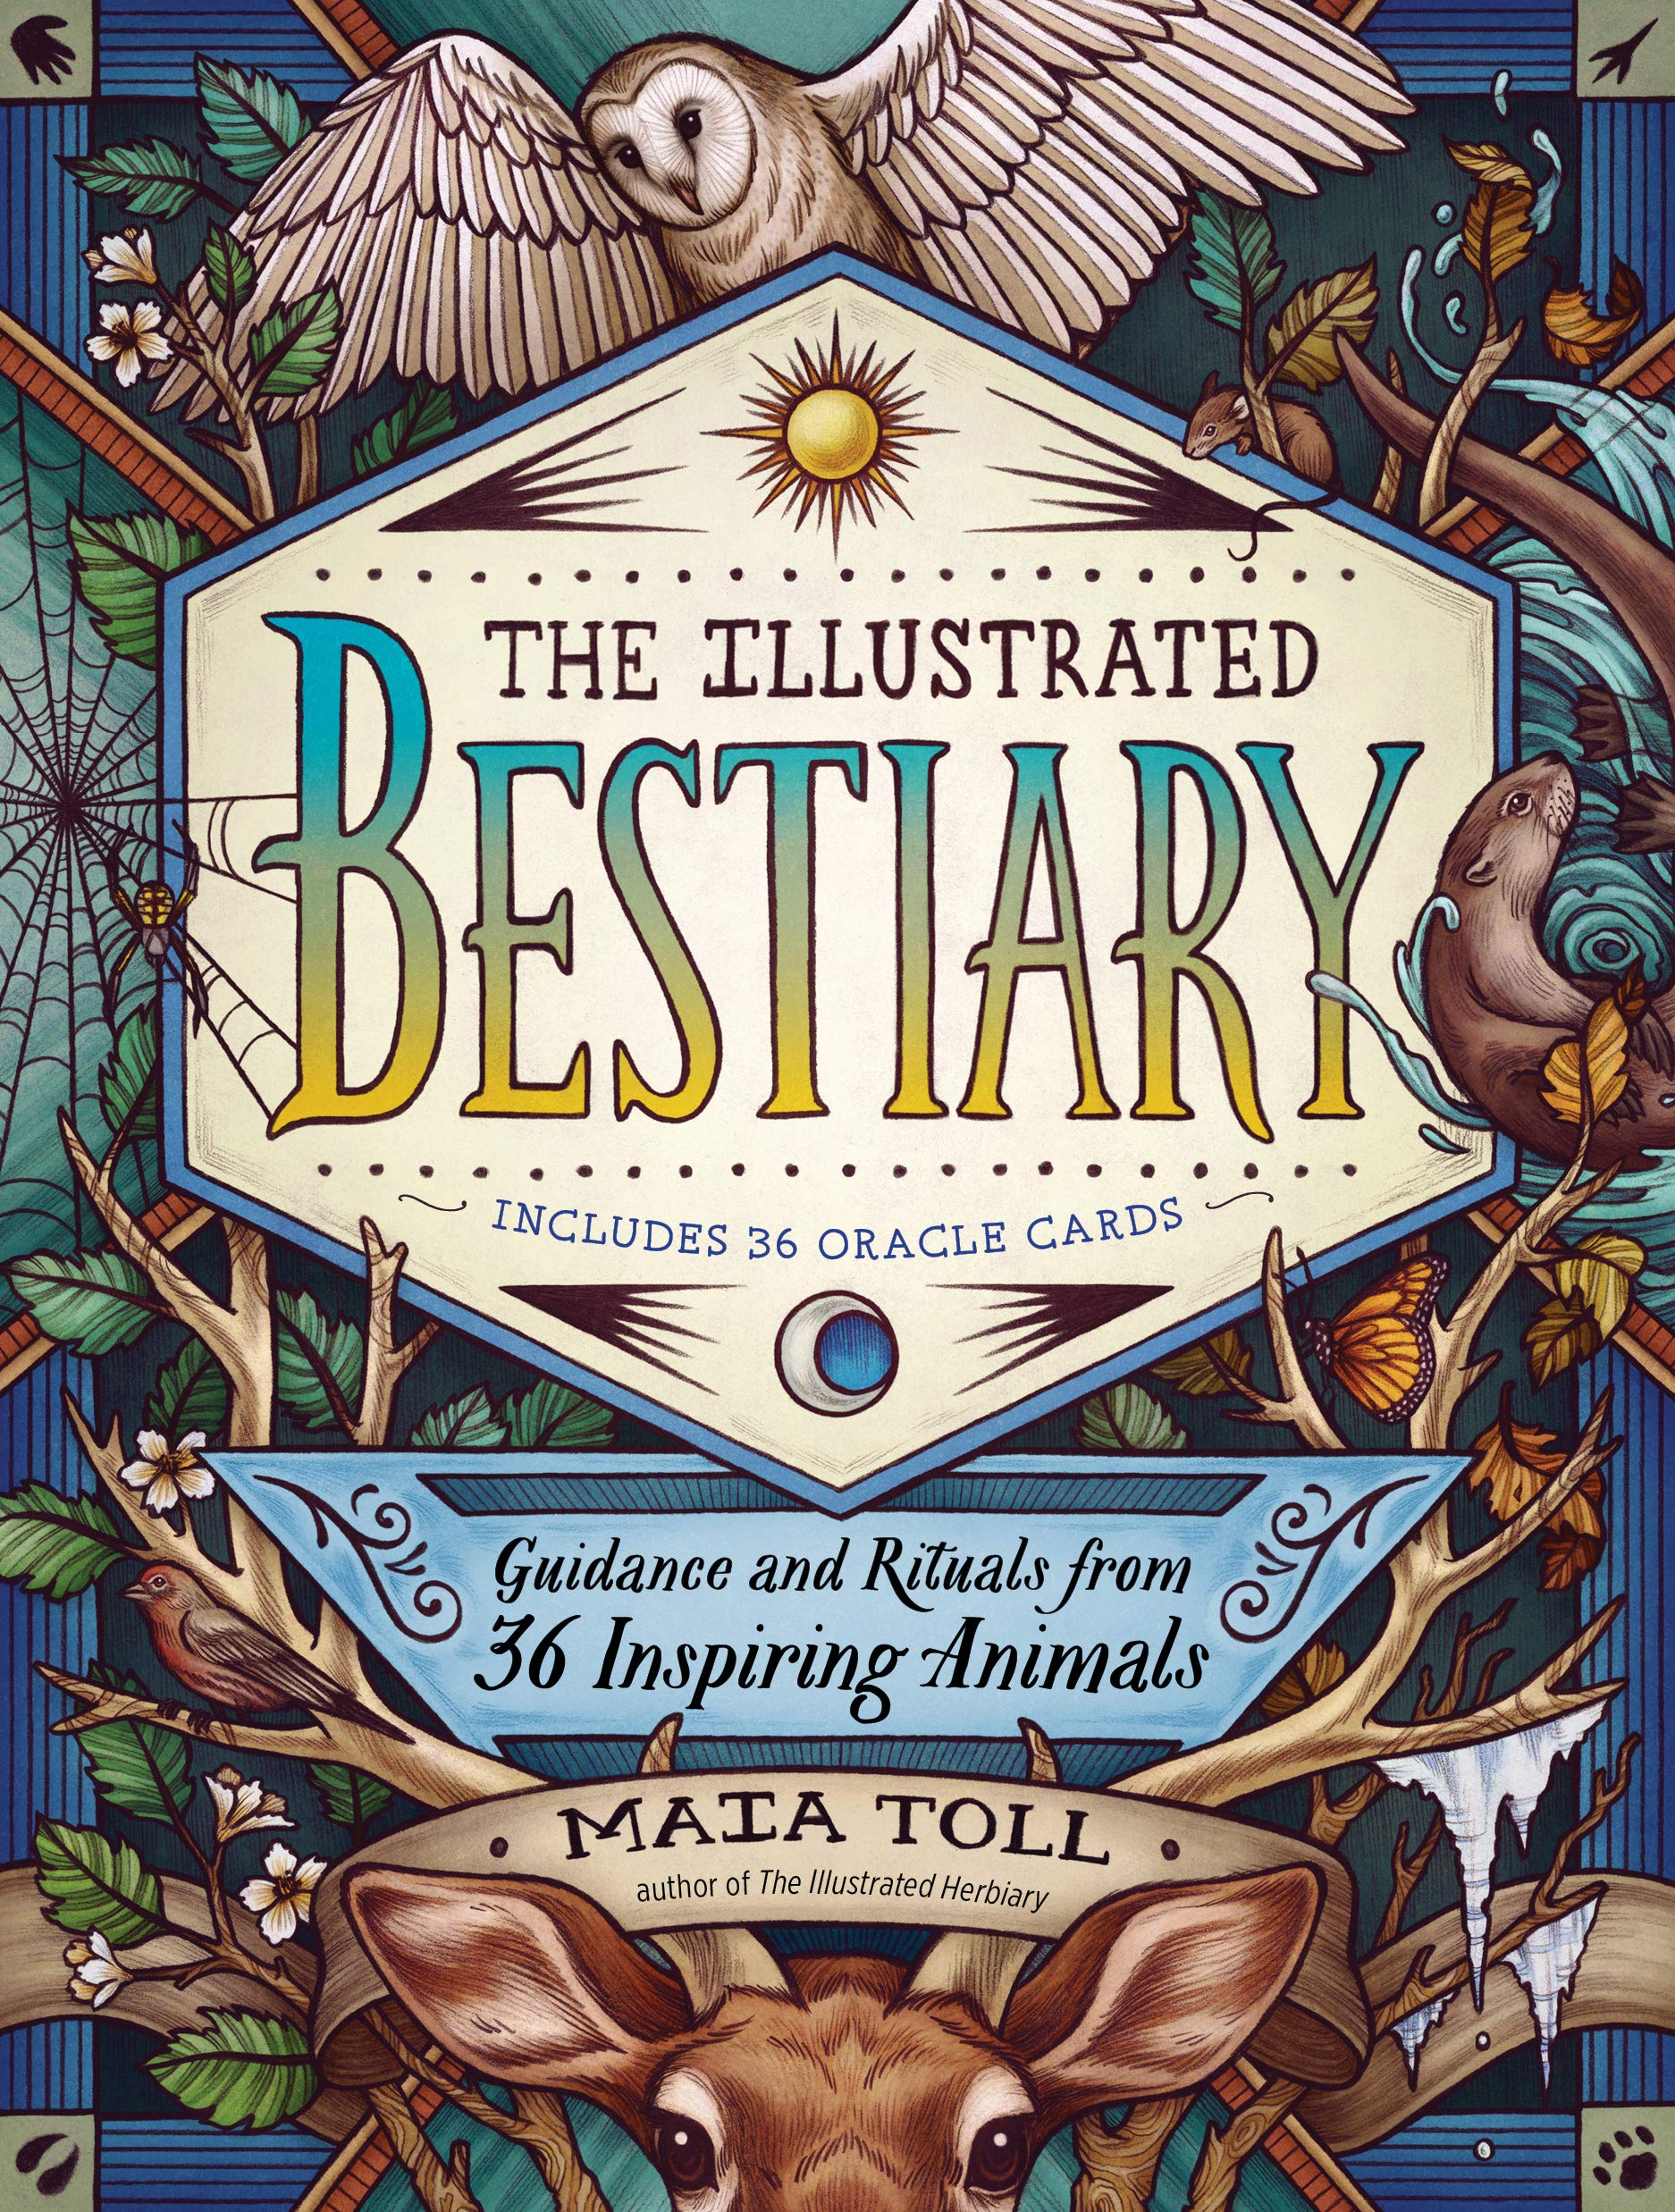 The Illustrated Bestiary: Guidance and Rituals from 36 Inspiring Animals (Wild Wisdom)